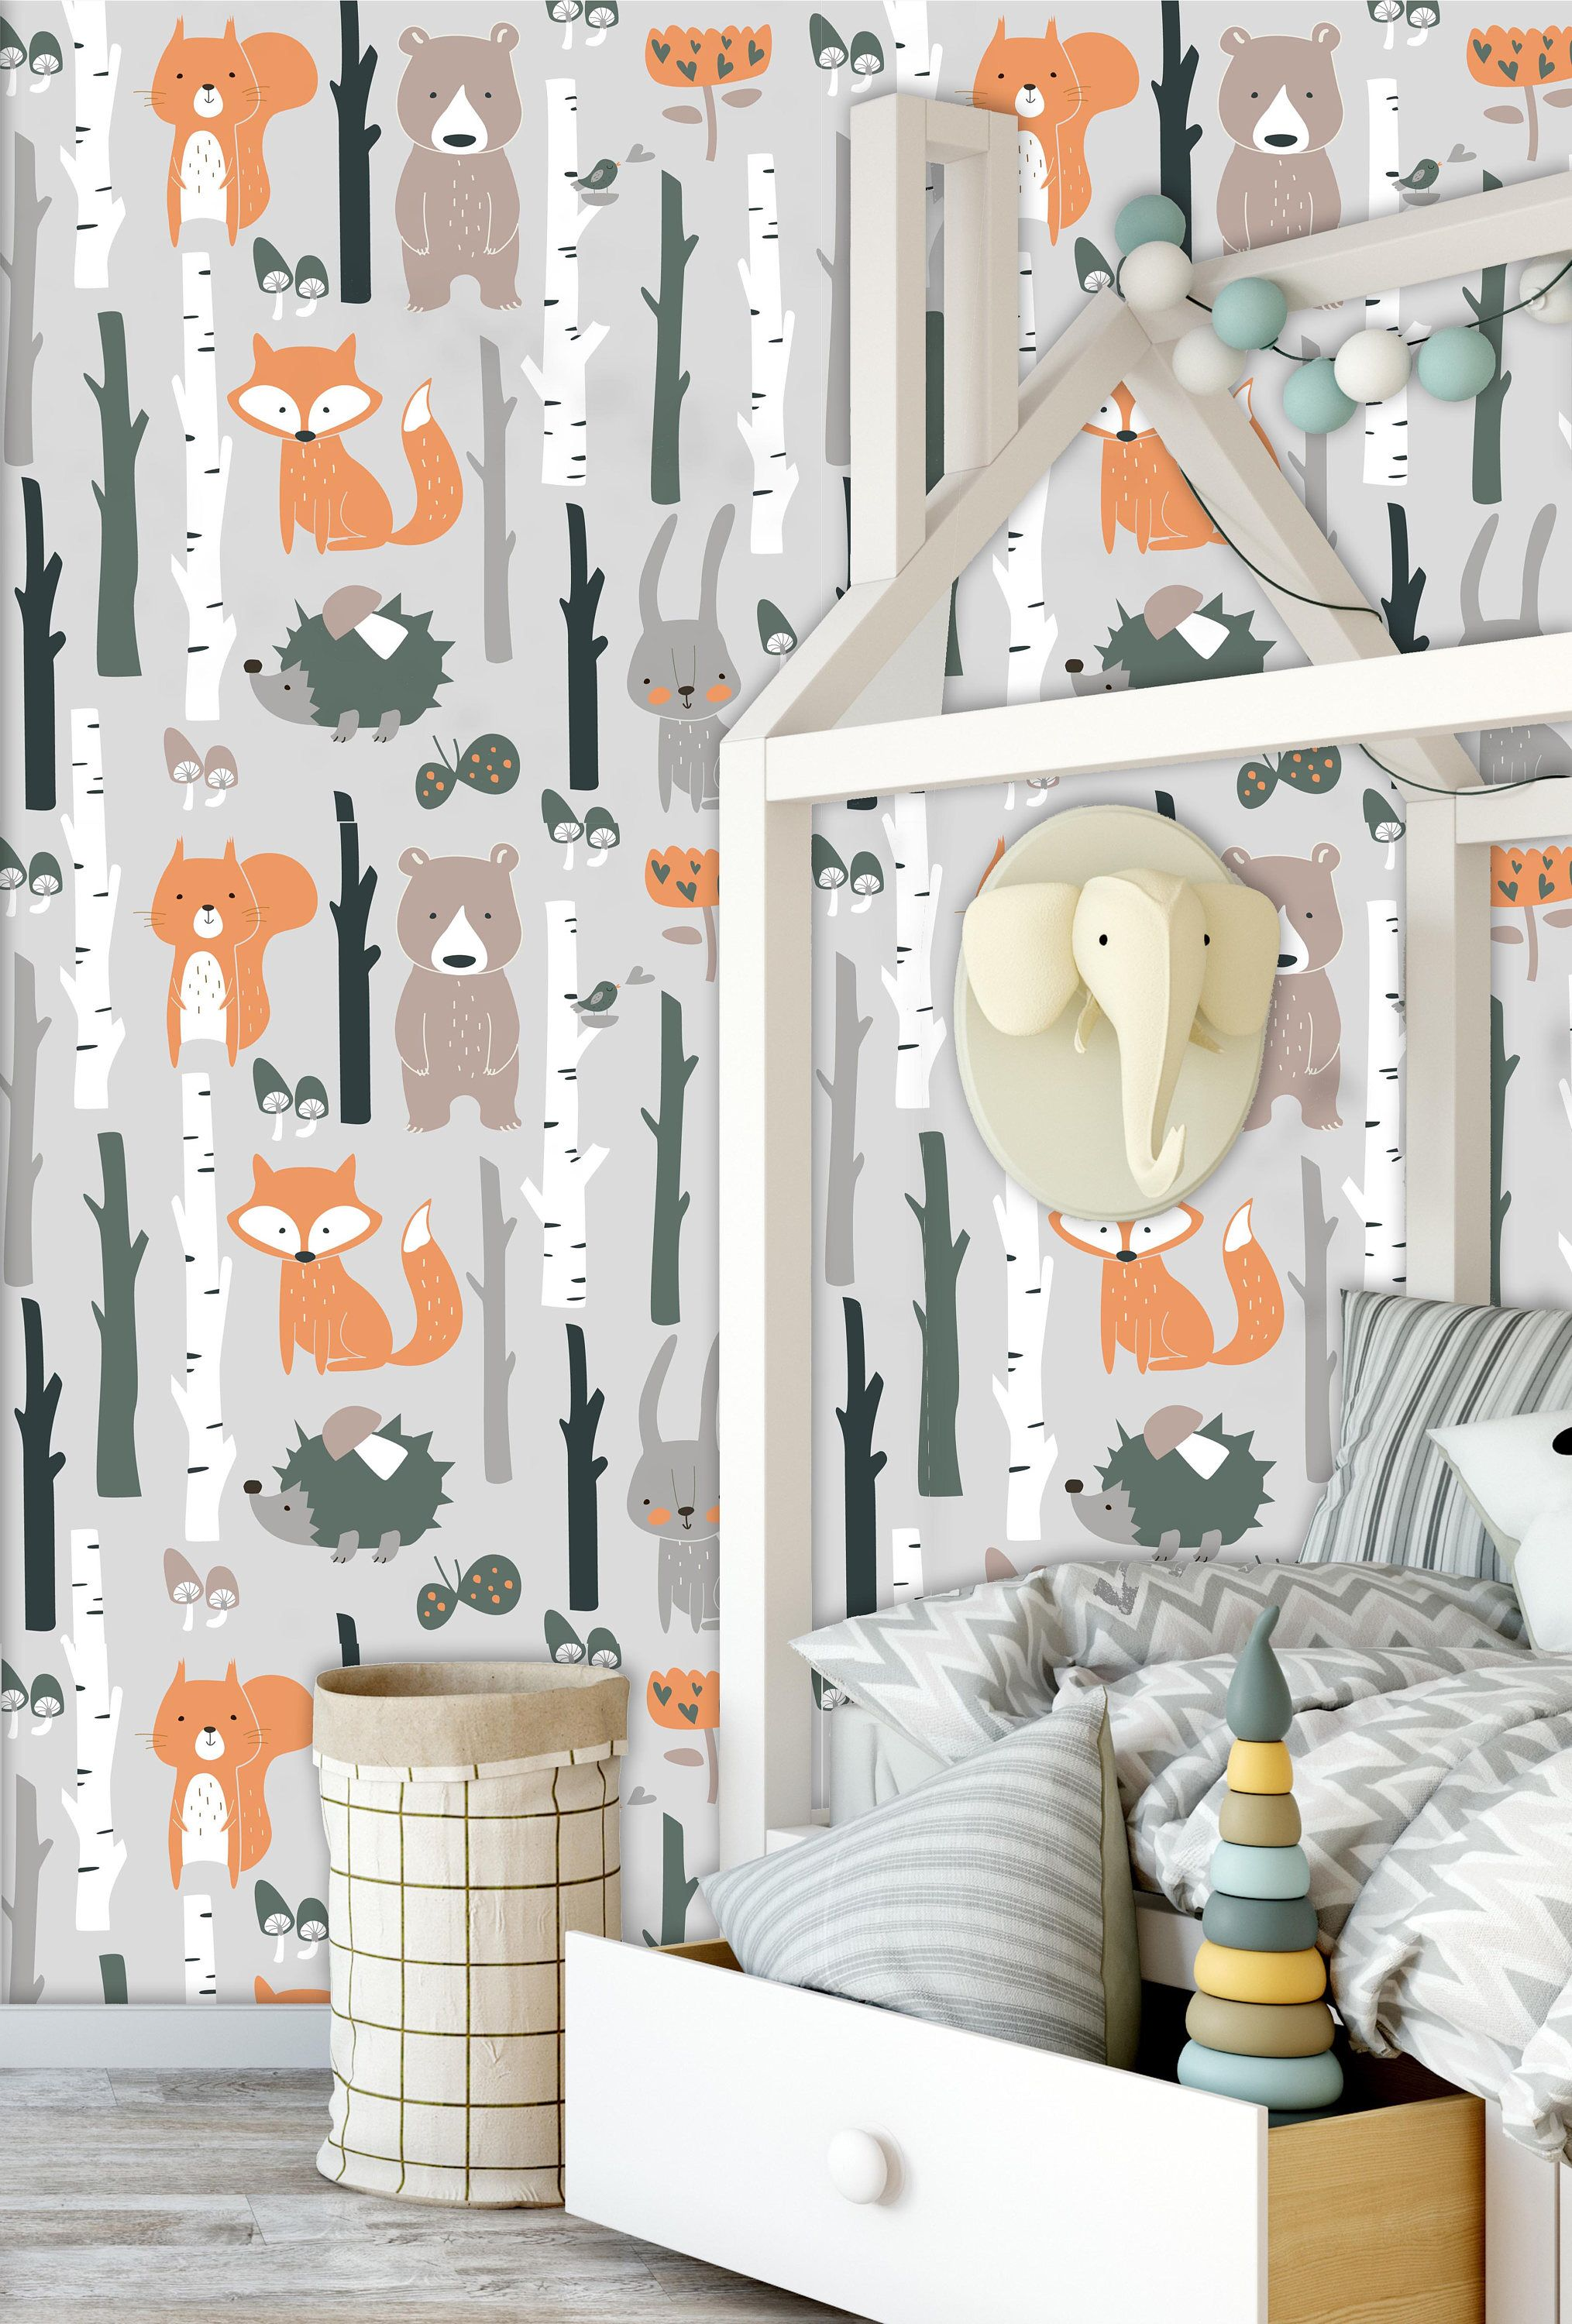 Removable Wallpaper Mural Peel & Stick for Kids and